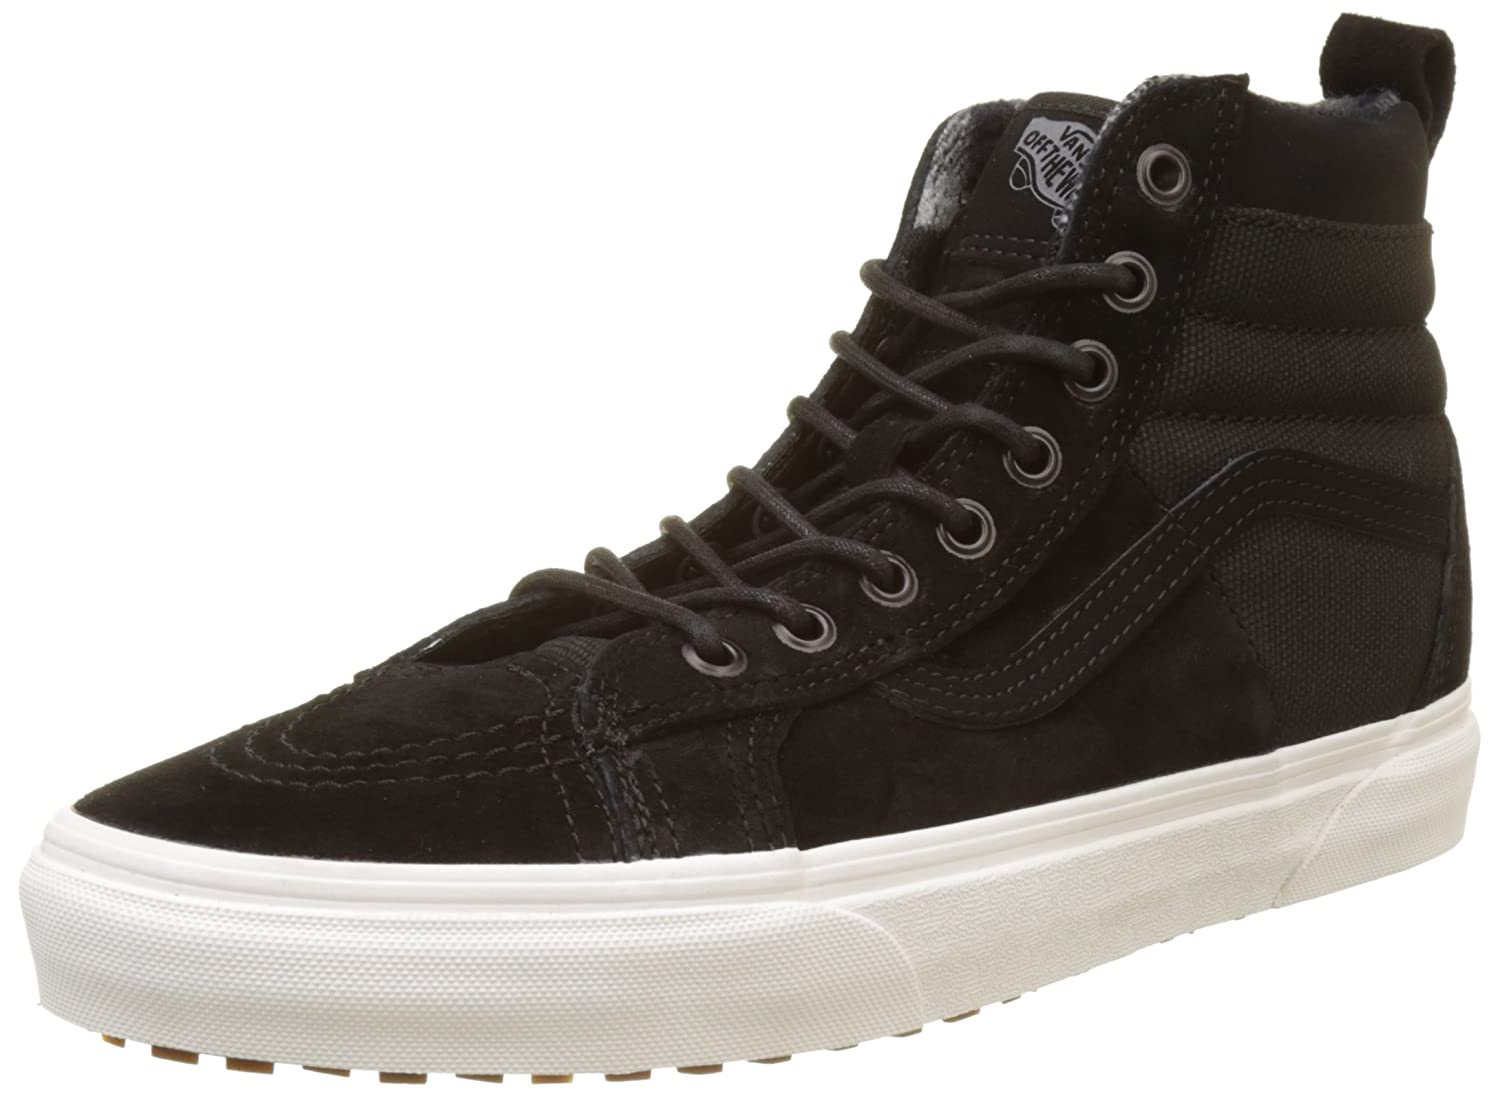 Vans Sk8-Hi Unisex Casual High-Top Skate Shoes, Comfortable and Durable in Signature Waffle Rubber Sole B01N9GWD0E 7.5 D(M) US|Black